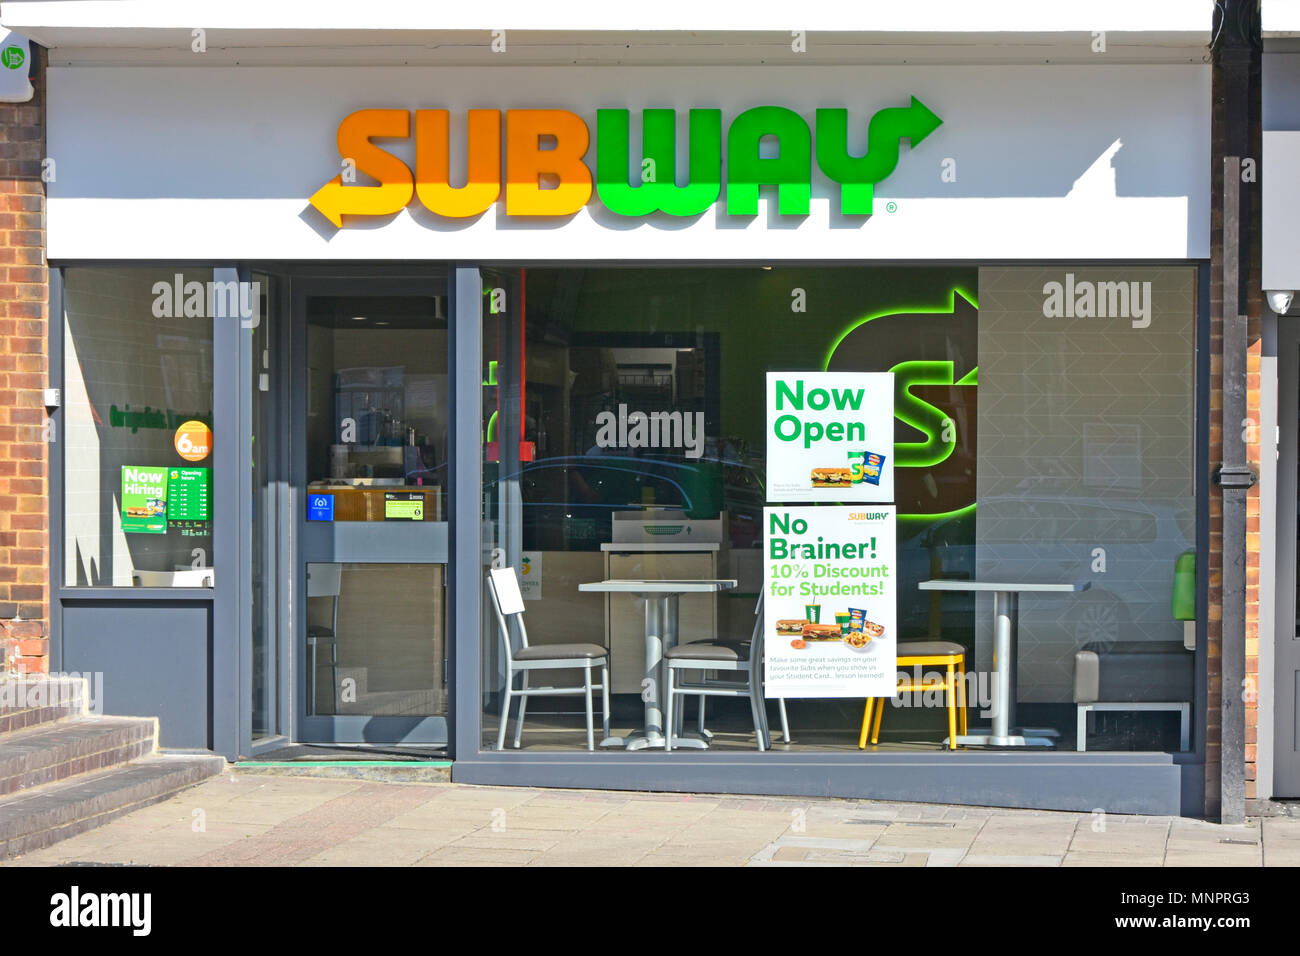 Just Opened New Franchise Branch With New Subway Brand Logo